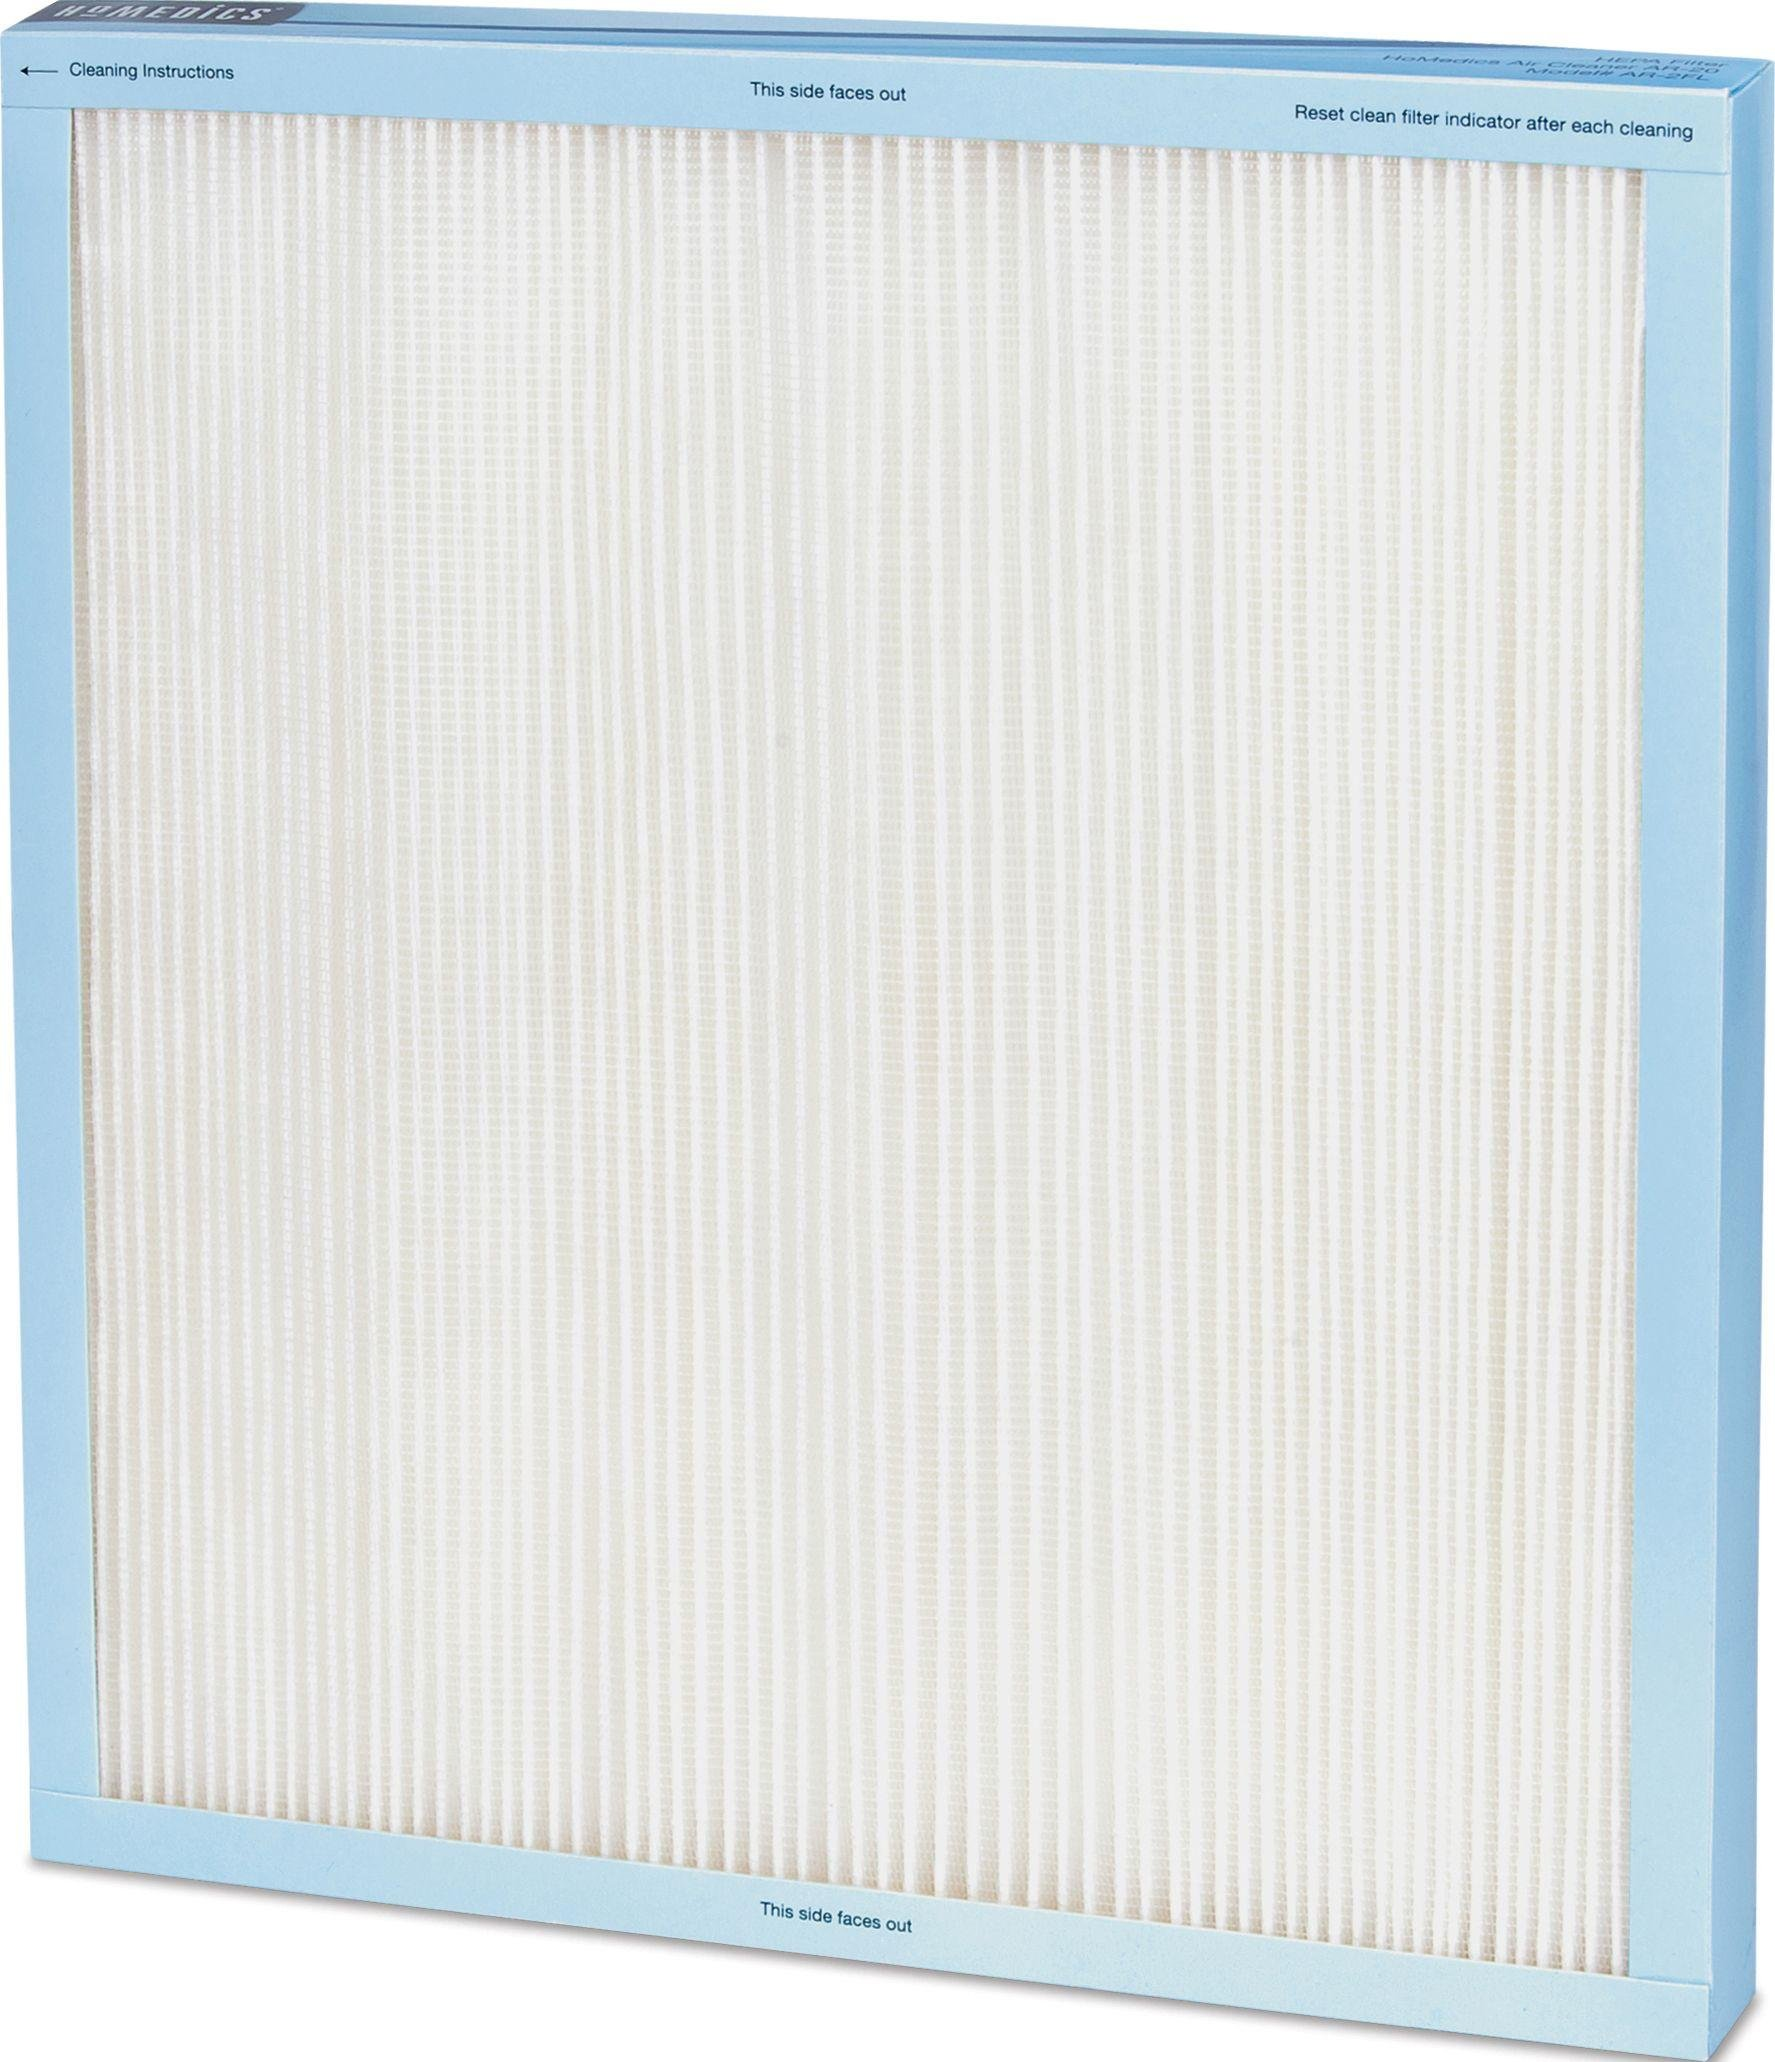 Image of HoMedics Spare Filter for AR-20 HEPA - Air Purifier